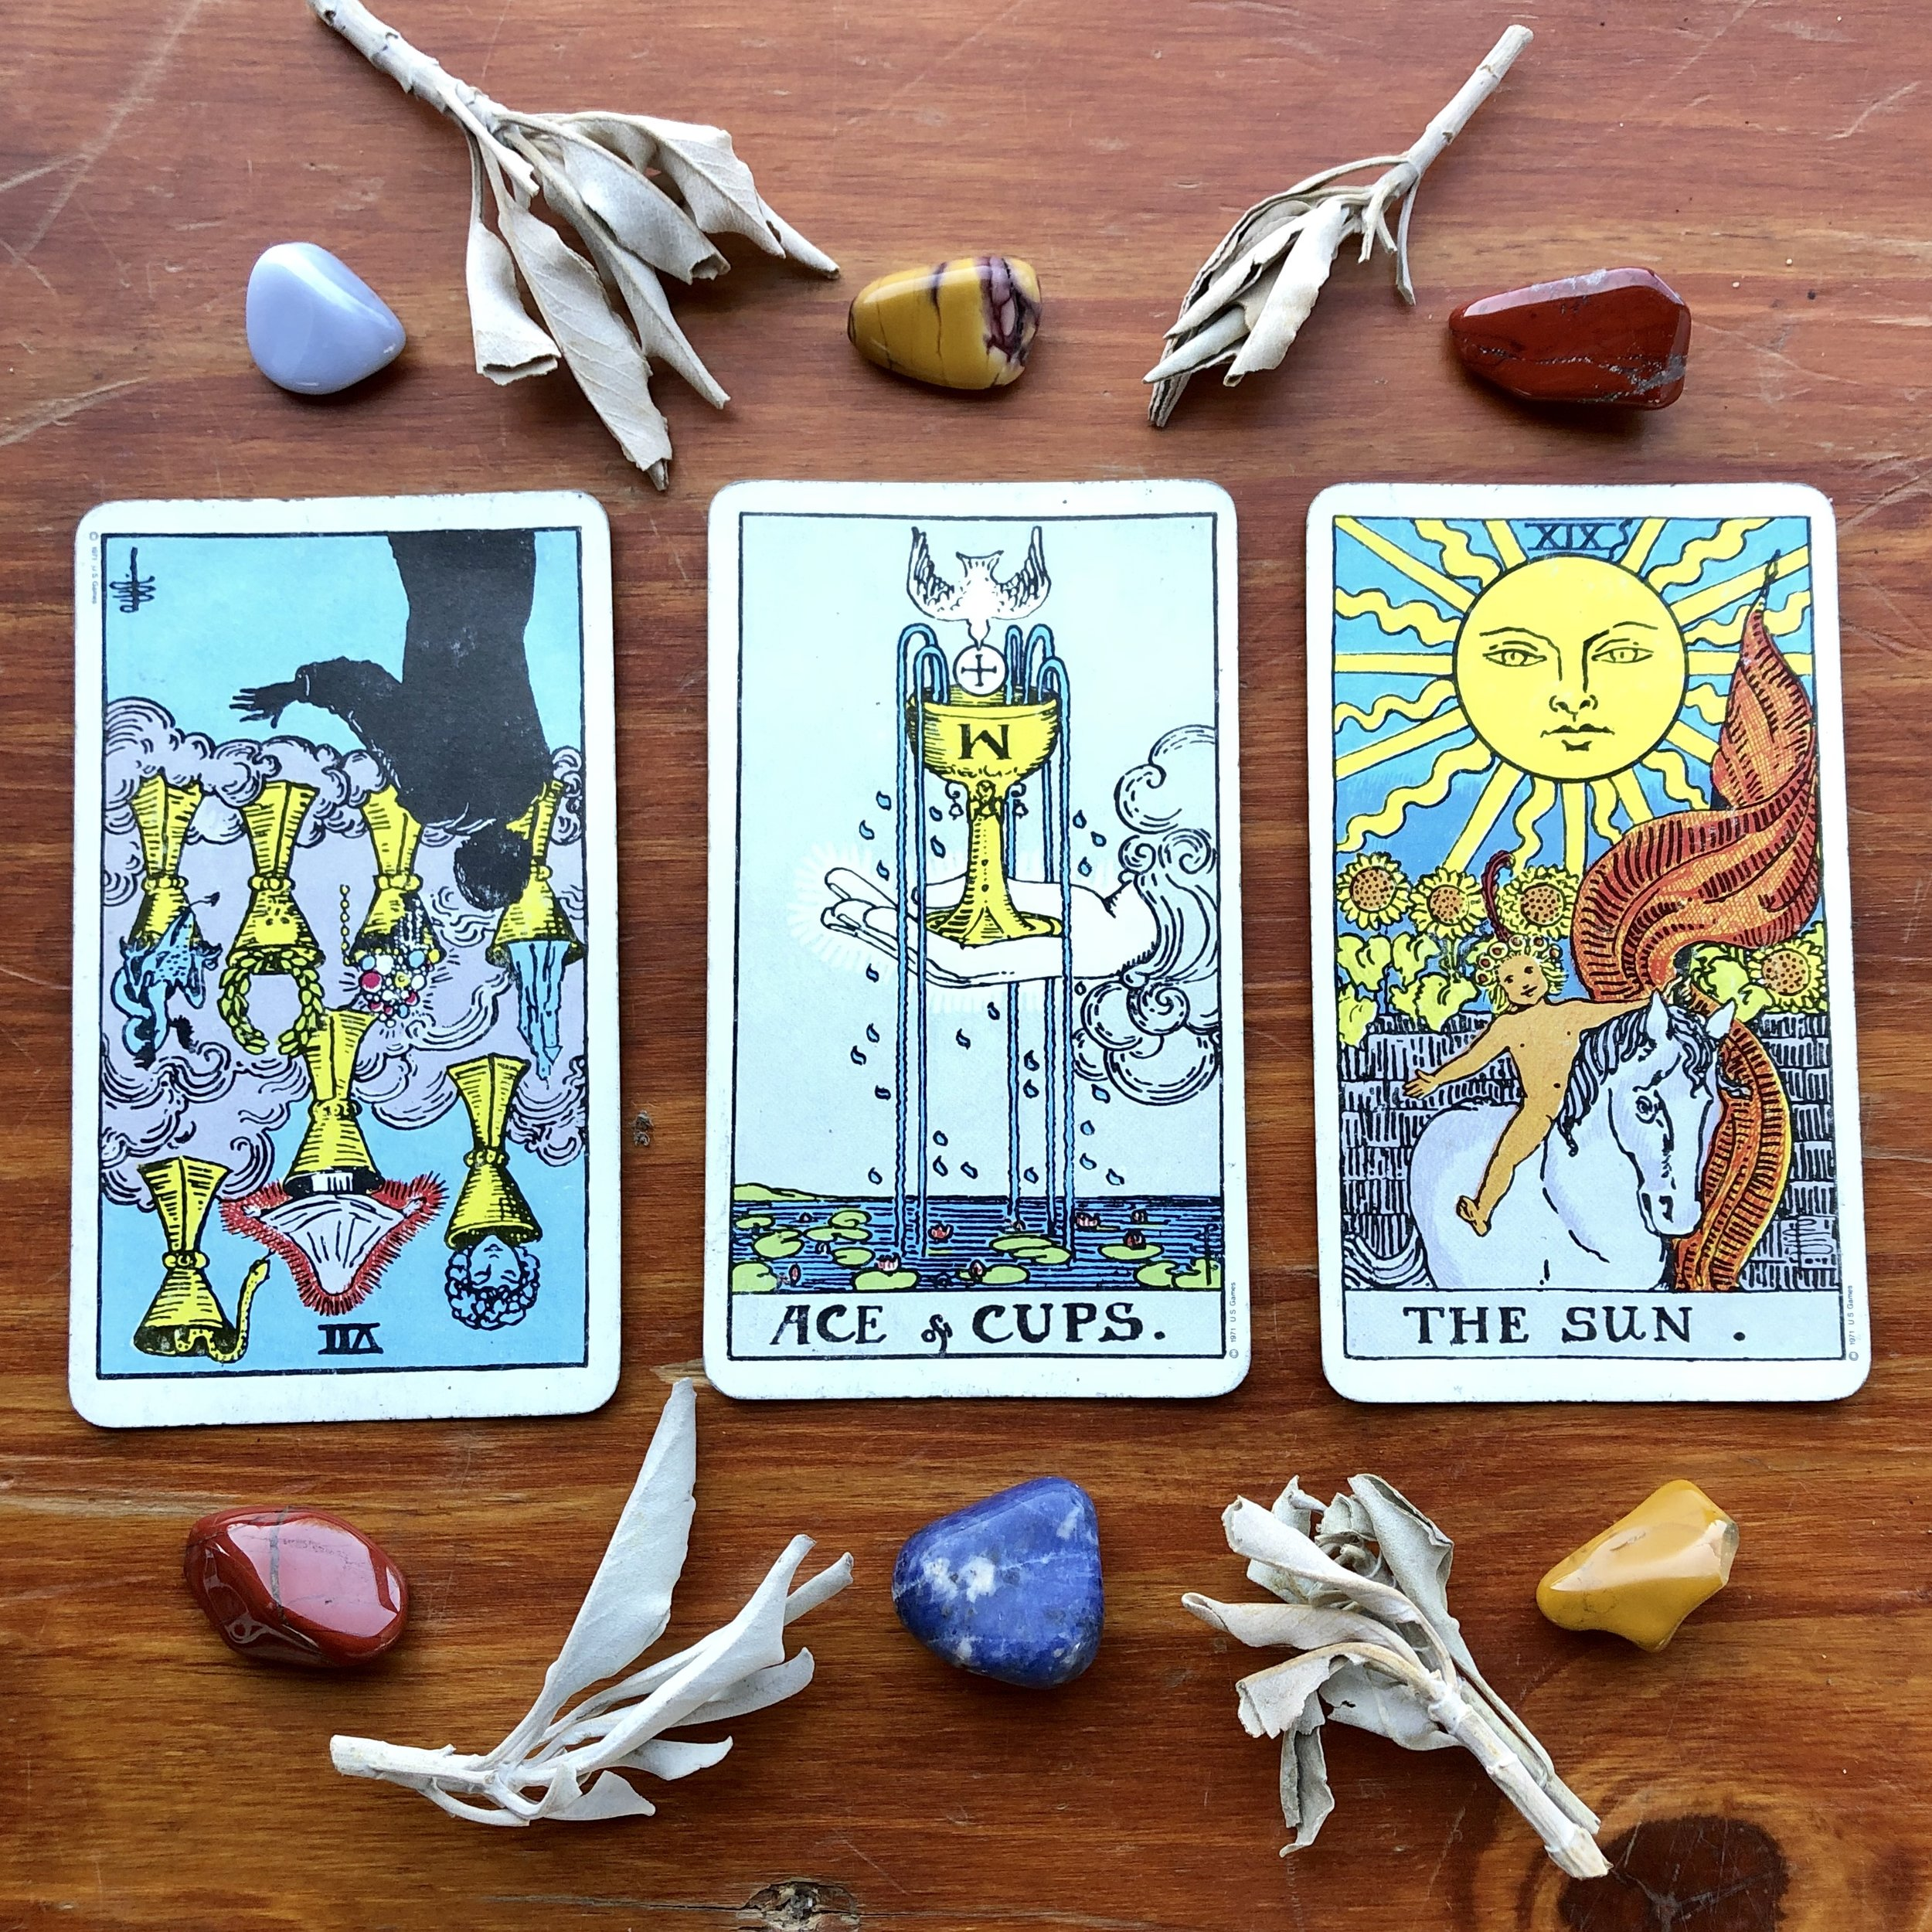 Rider Waite Smith Tarot Deck: VII of Cups, Ace of Cups, The Sun